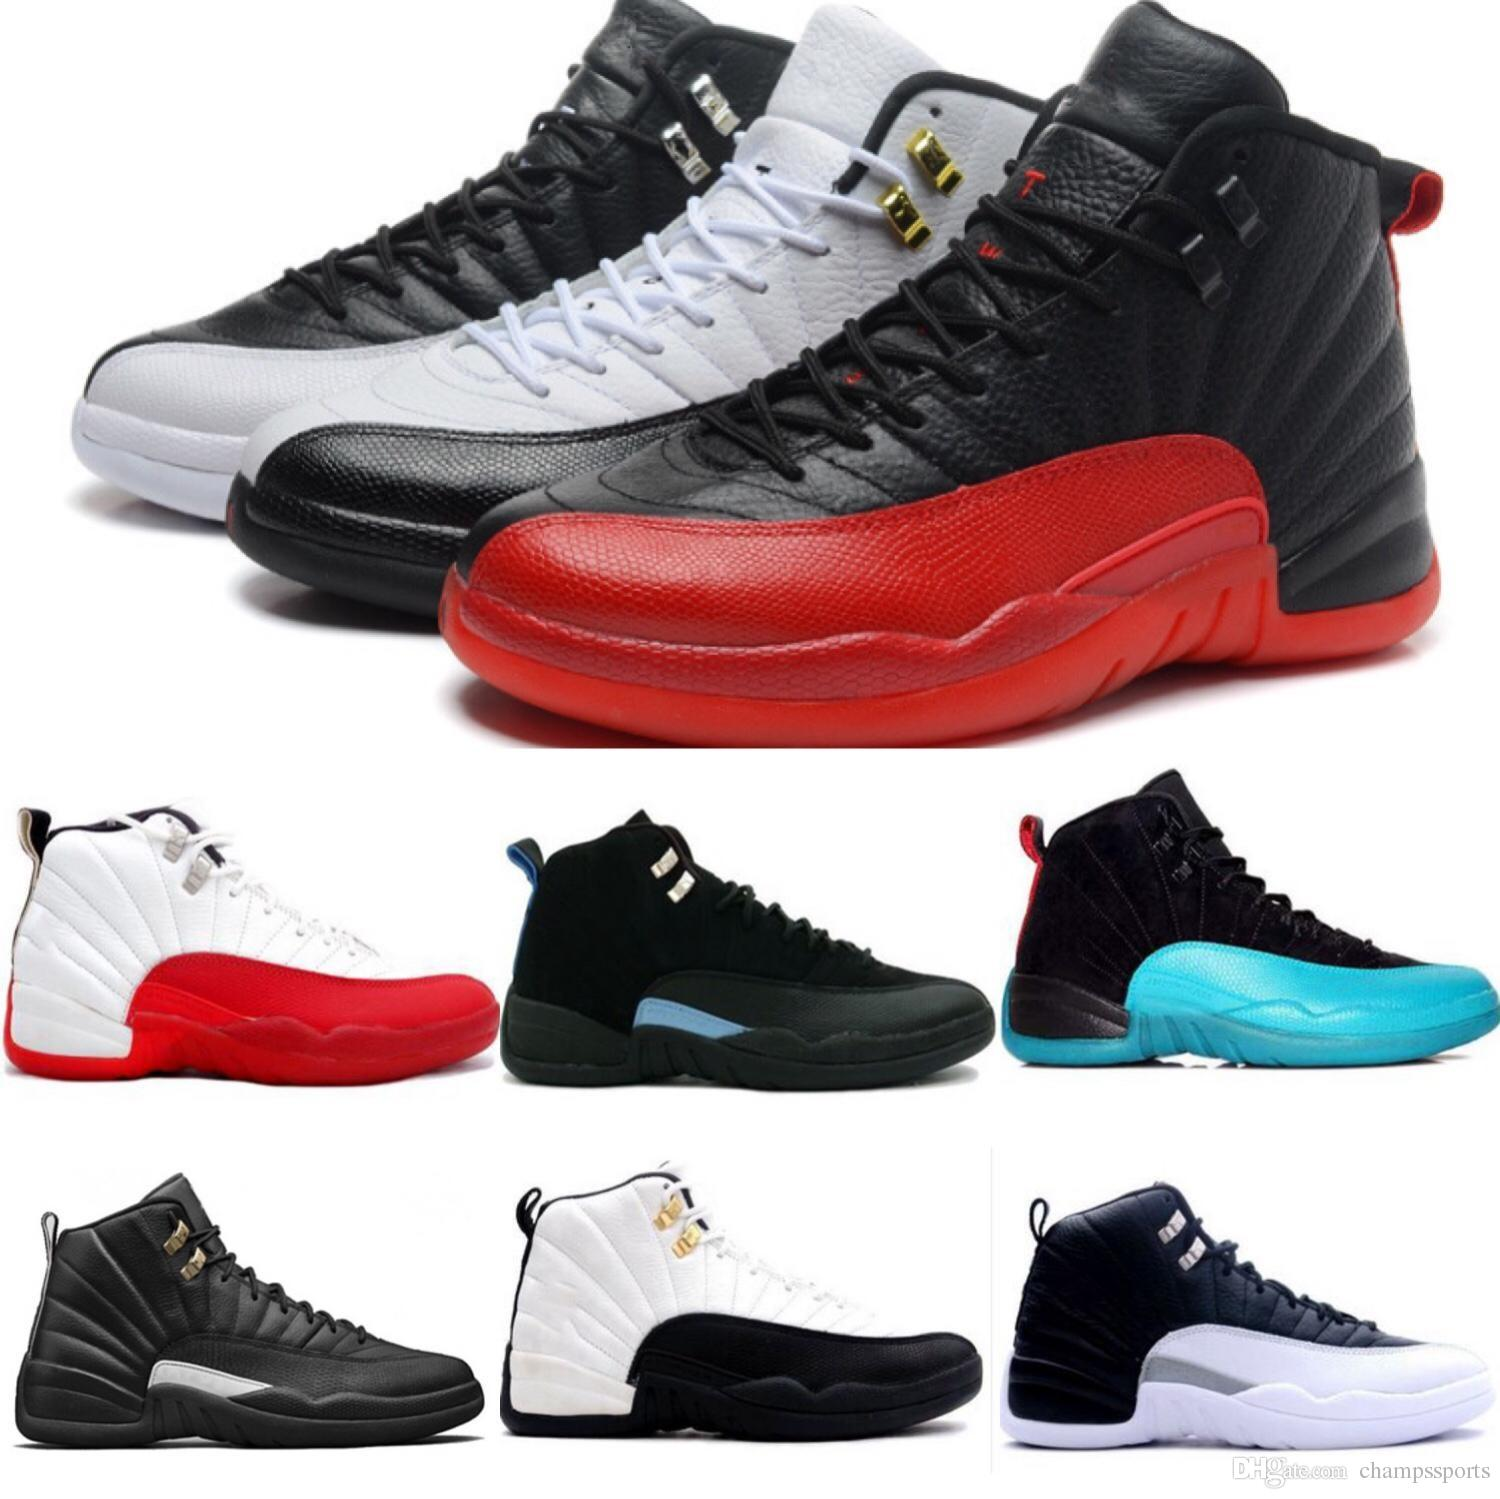 60b64072521e 2018 Basketball Shoes 12 Bordeaux Dark Grey Wool Basketball Shoe Ovo White  Flu Game UNC Gym Red Taxi Gamma French Blue Suede Sneakers Barkley Shoes  Shoes ...